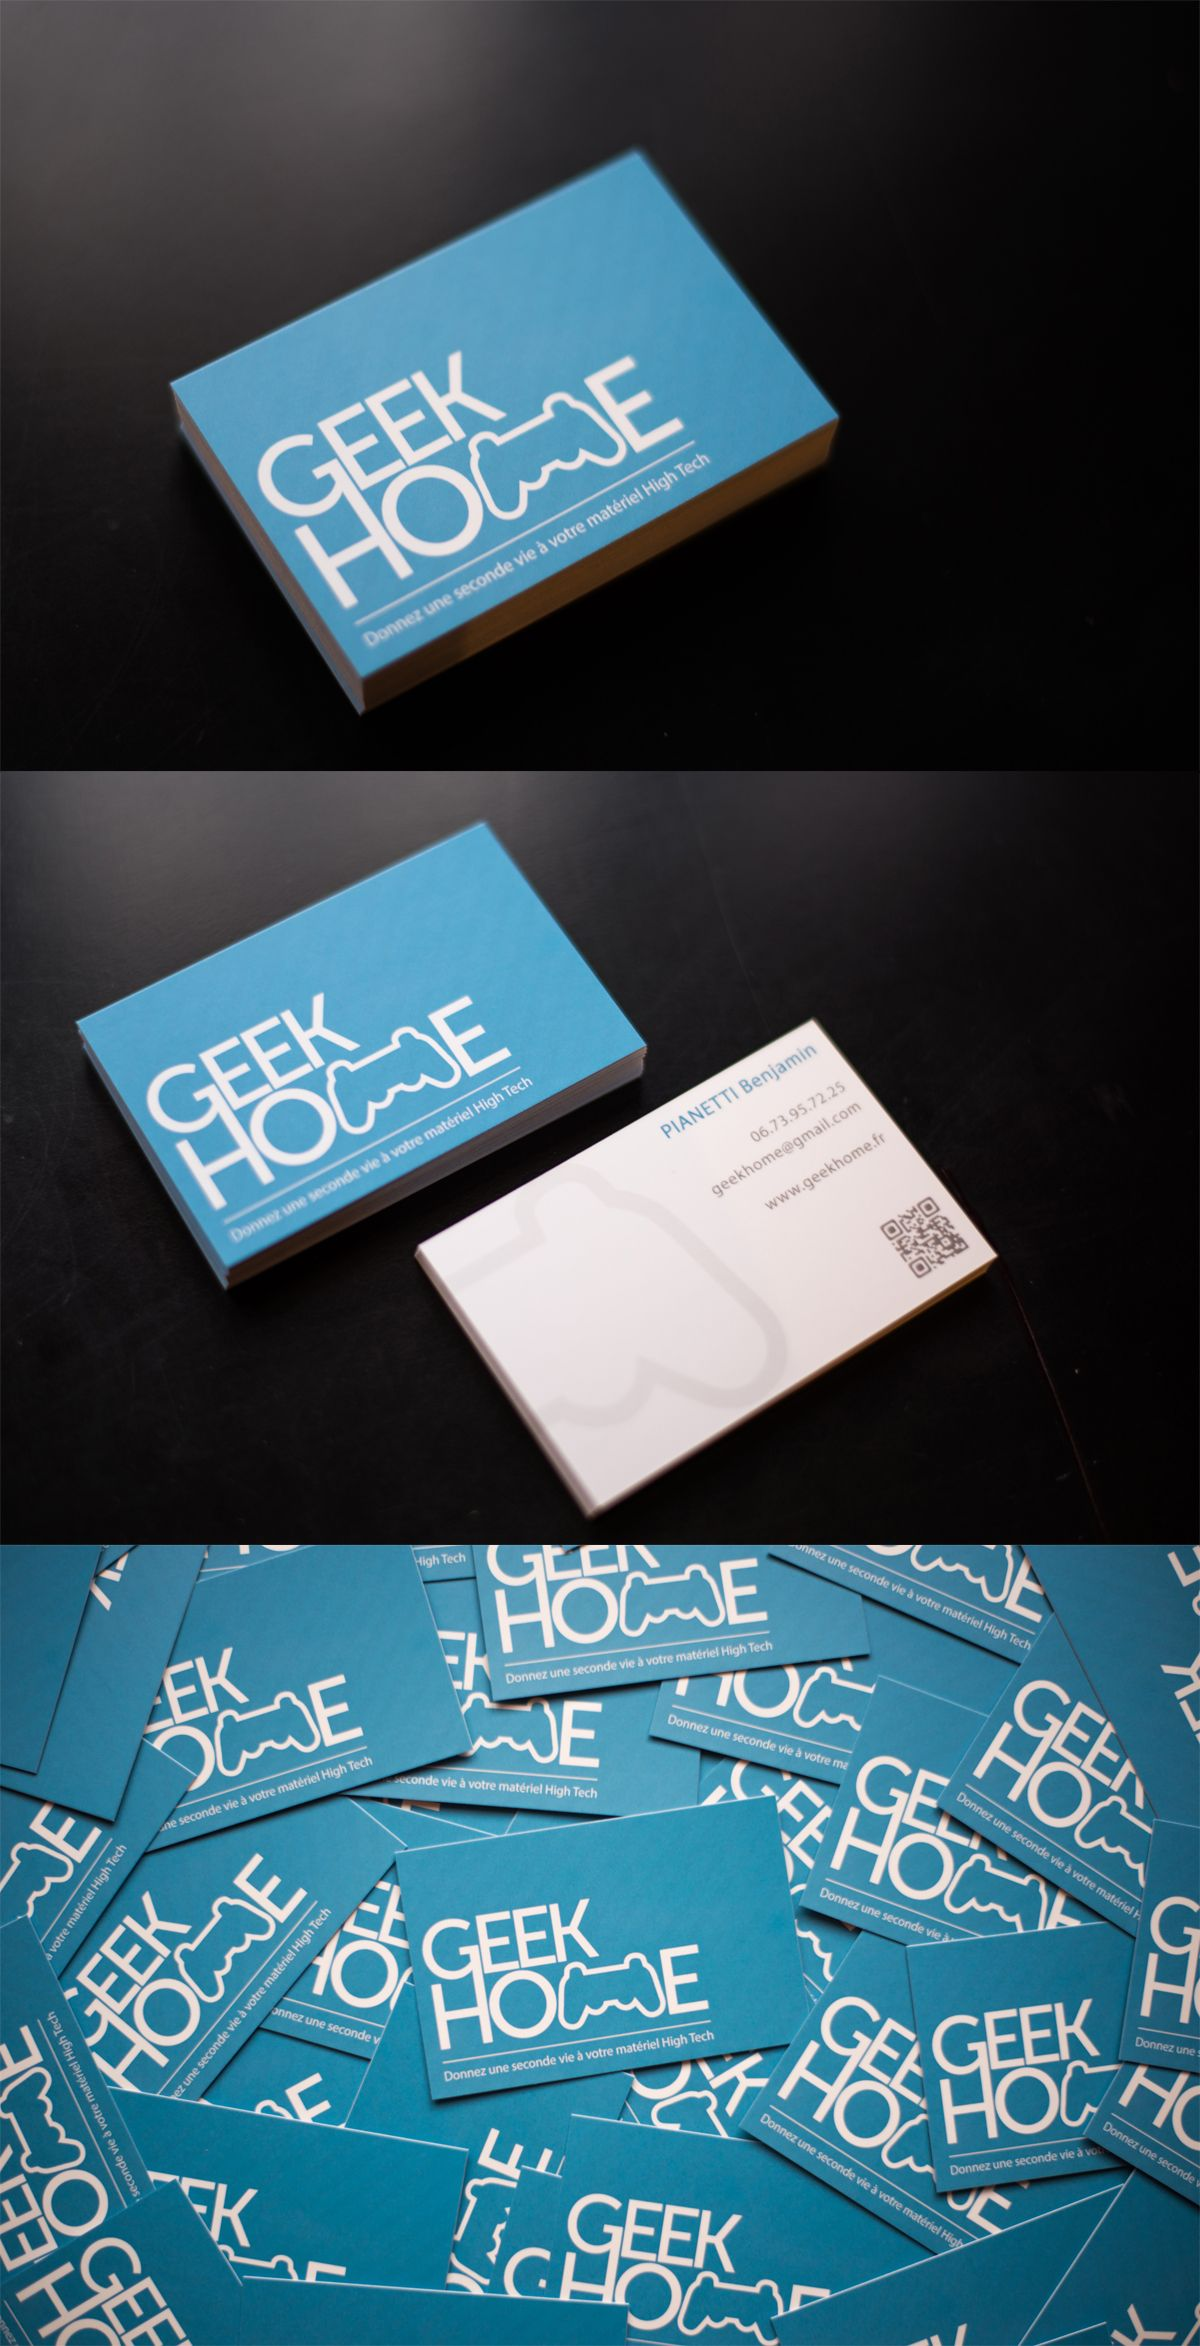 Creation De Logo Et Carte Visite Pour Lentreprise Geek Home Specialiste Dans La Reparation Materiel High Tech Businesscard